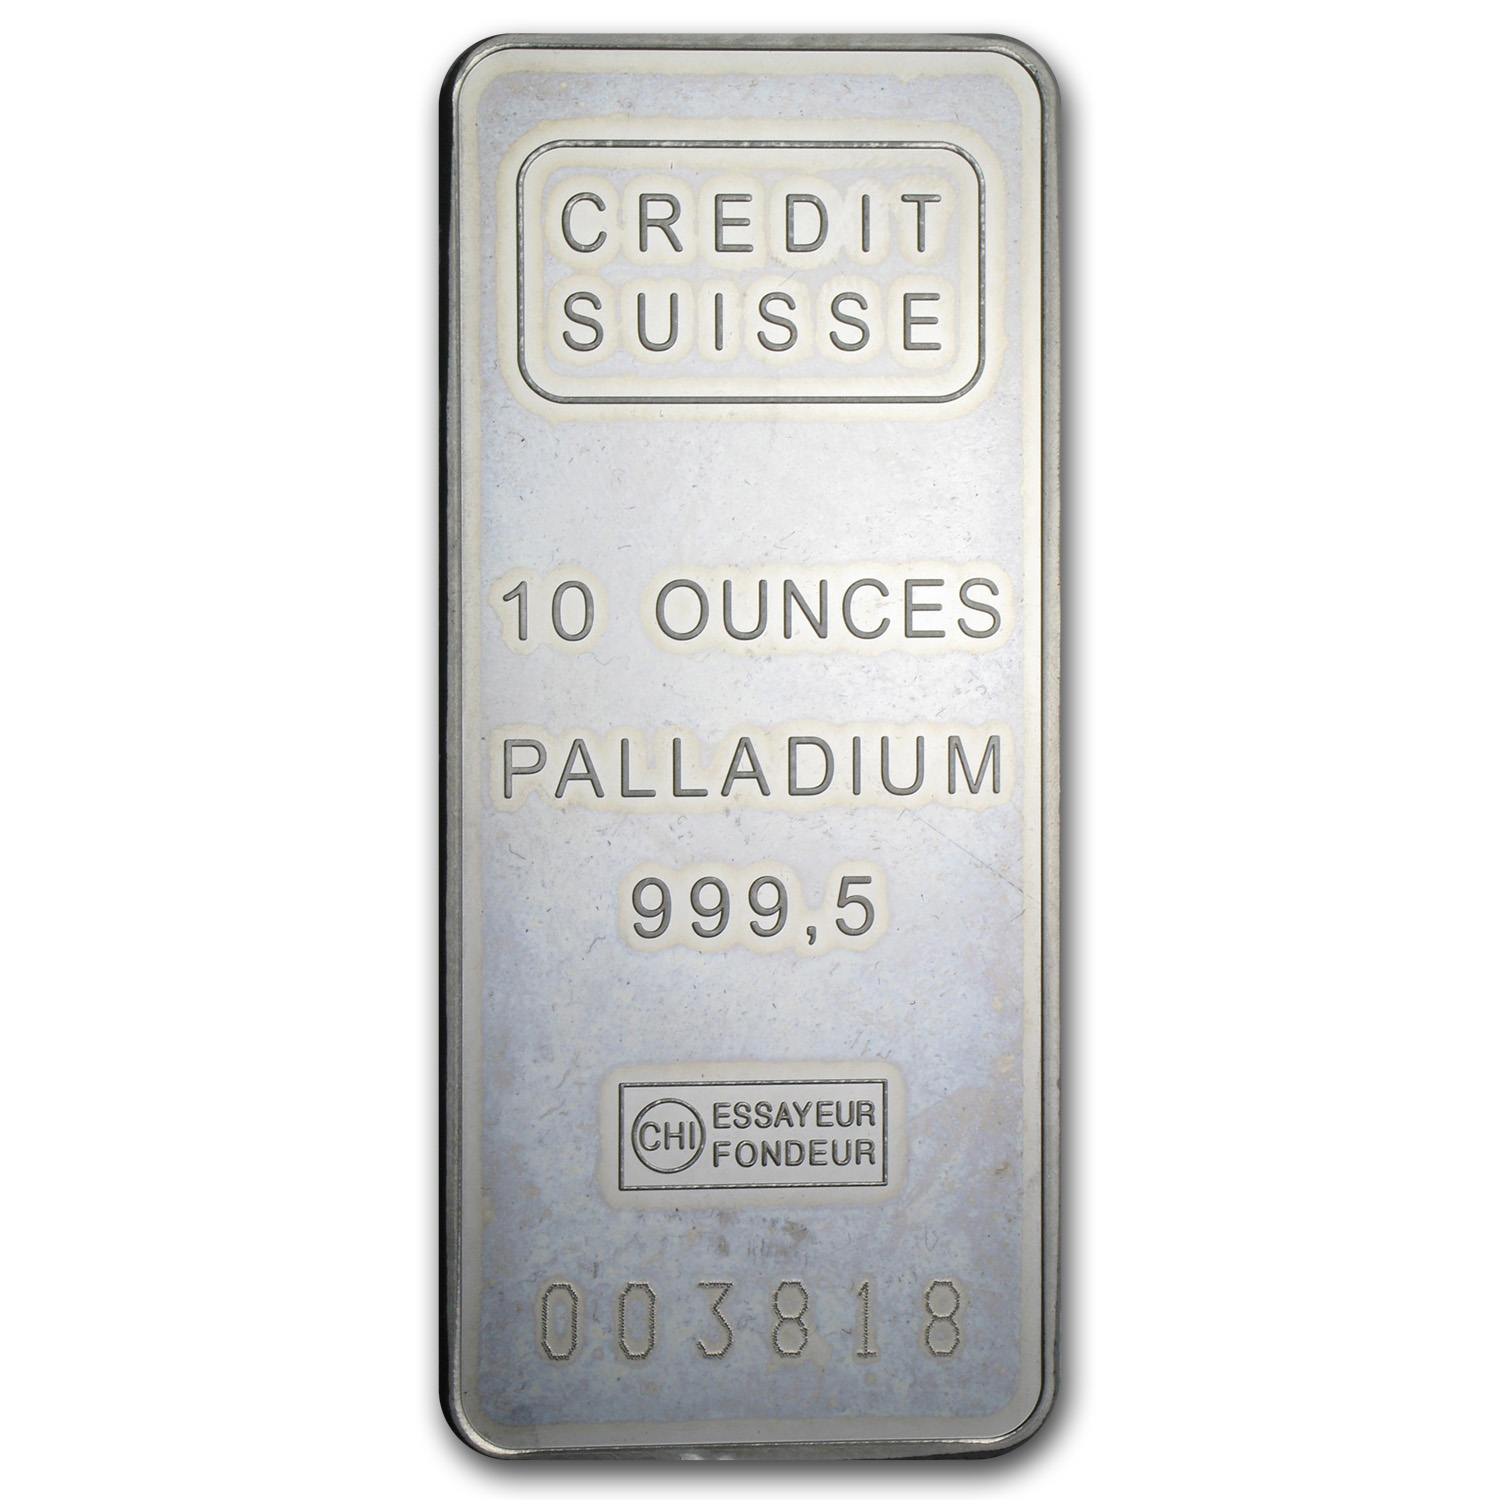 10 oz Palladium Bar - Credit Suisse (.9995 Fine)